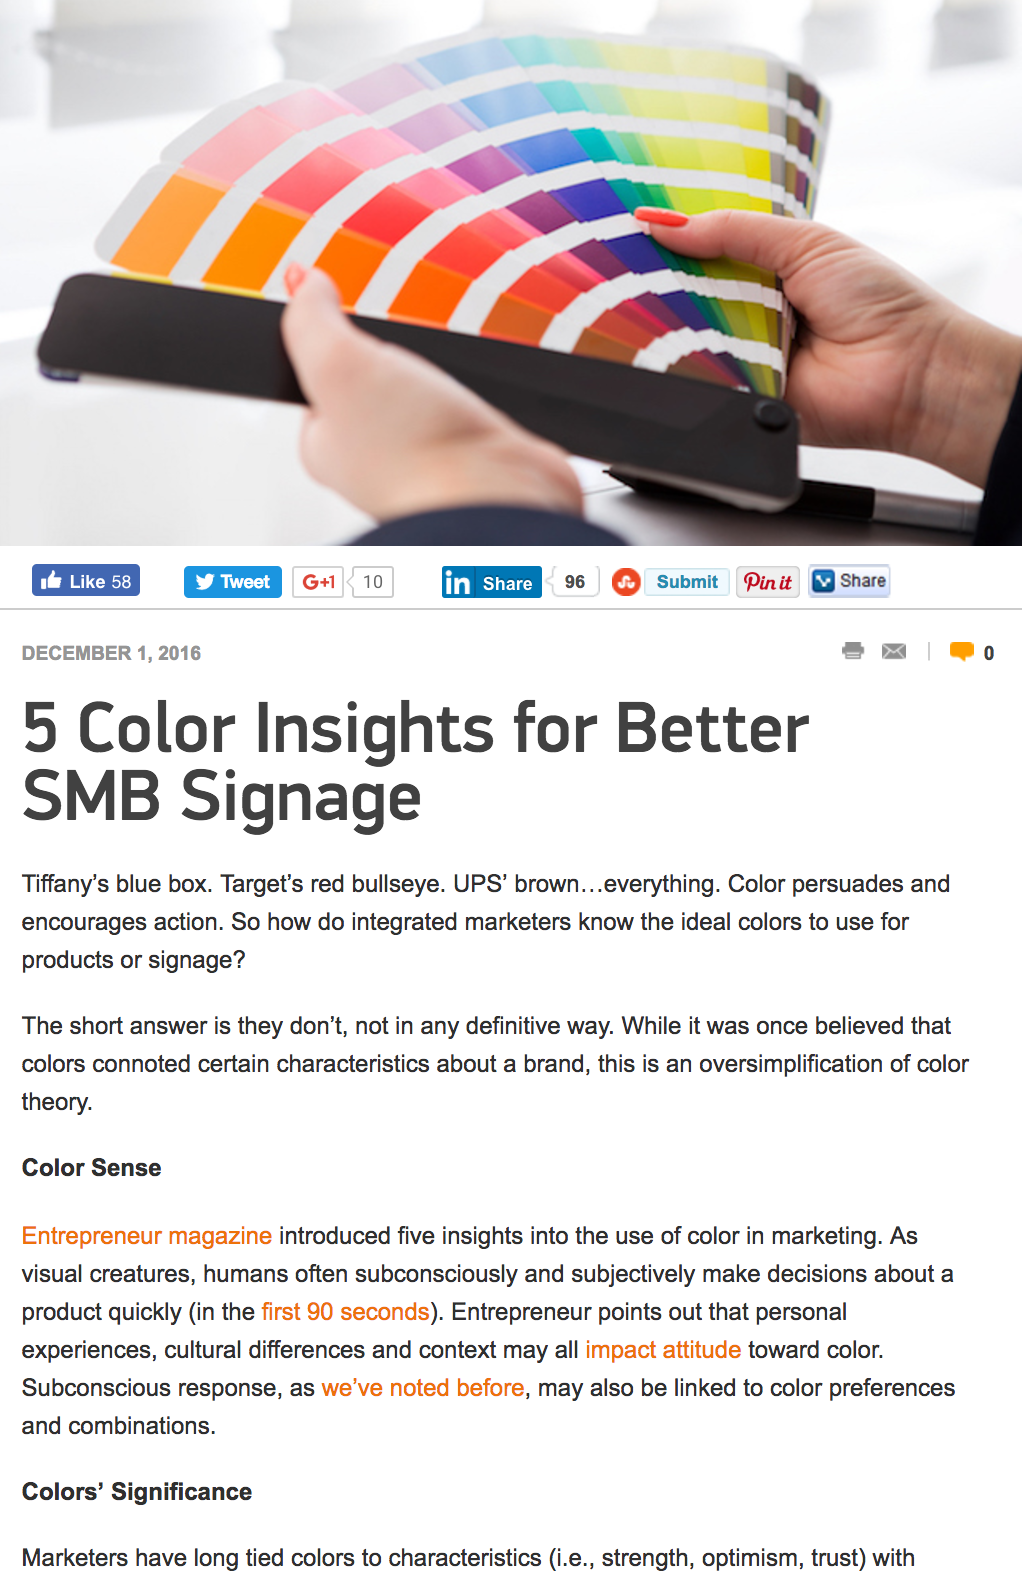 5 Color Insights - Marketing Tango